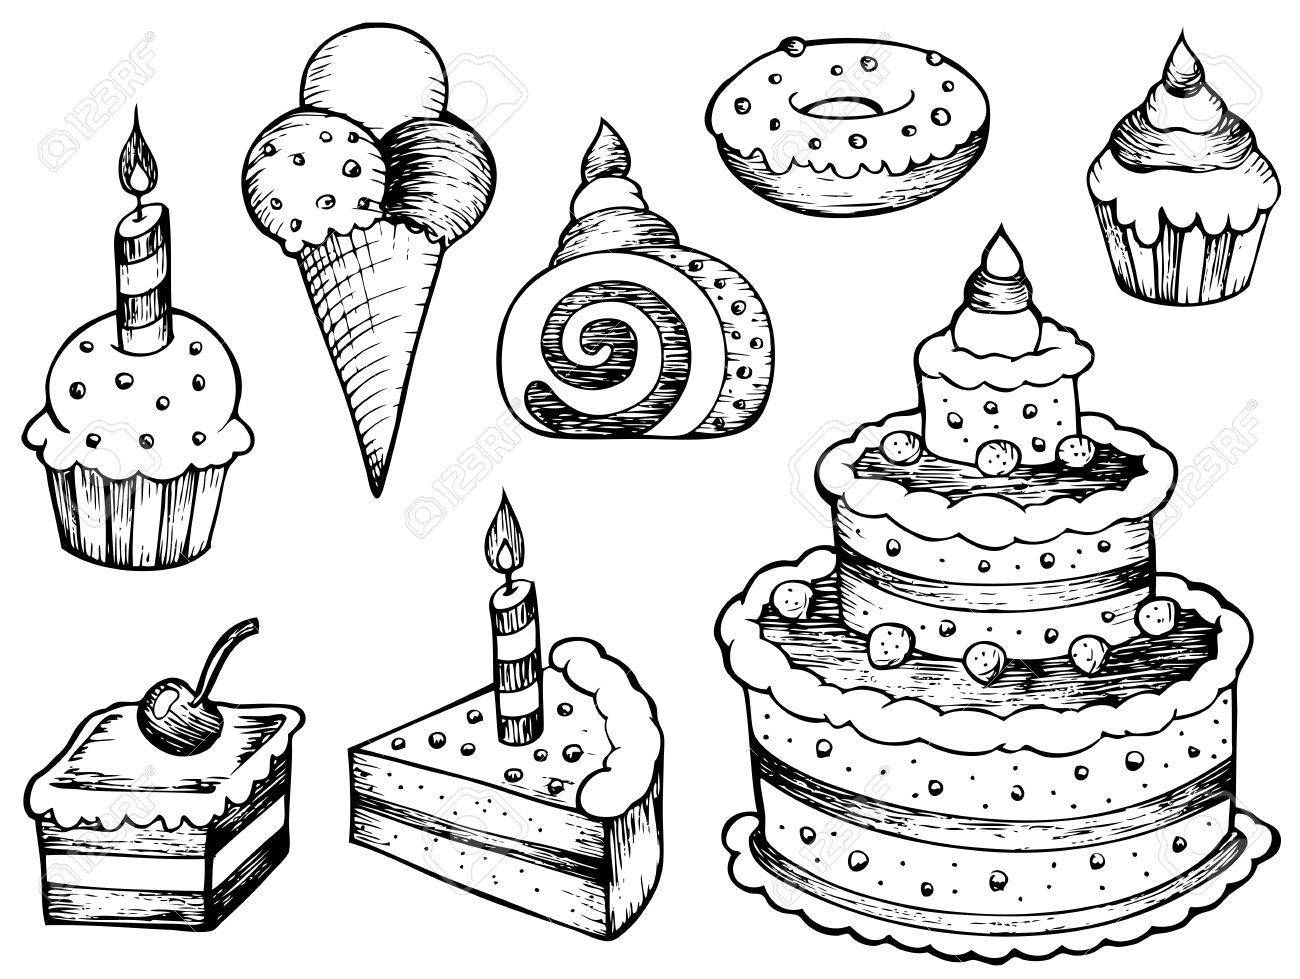 cakes drawings collection - vector illustration. royalty free